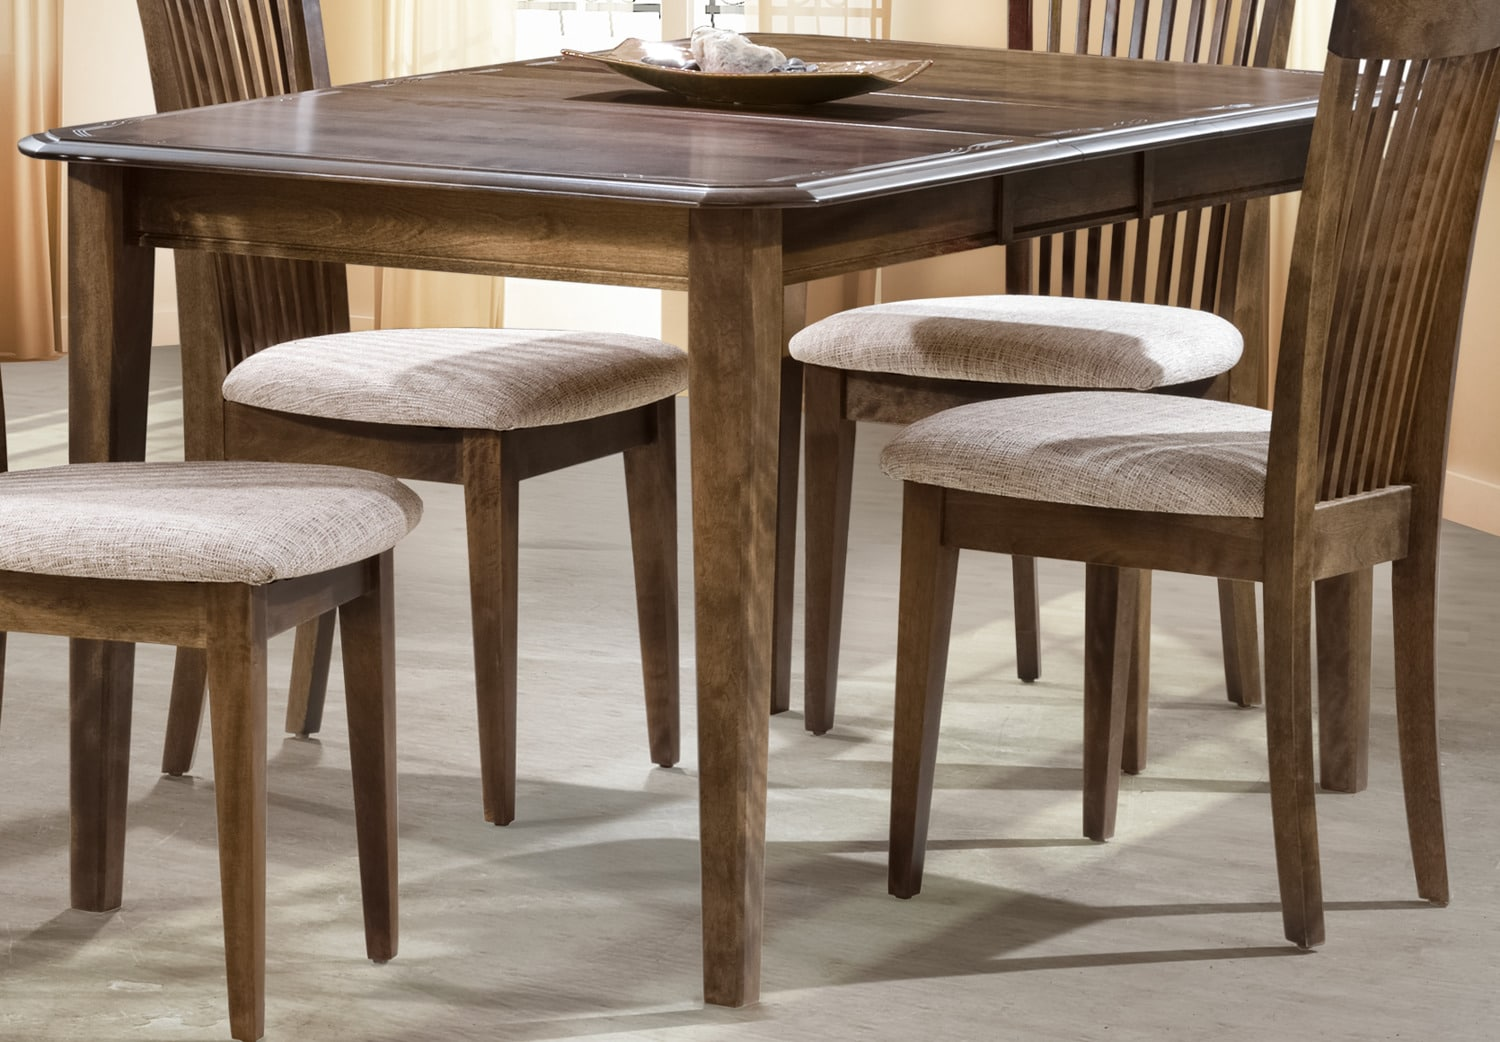 Granby Dining Table - Fossil